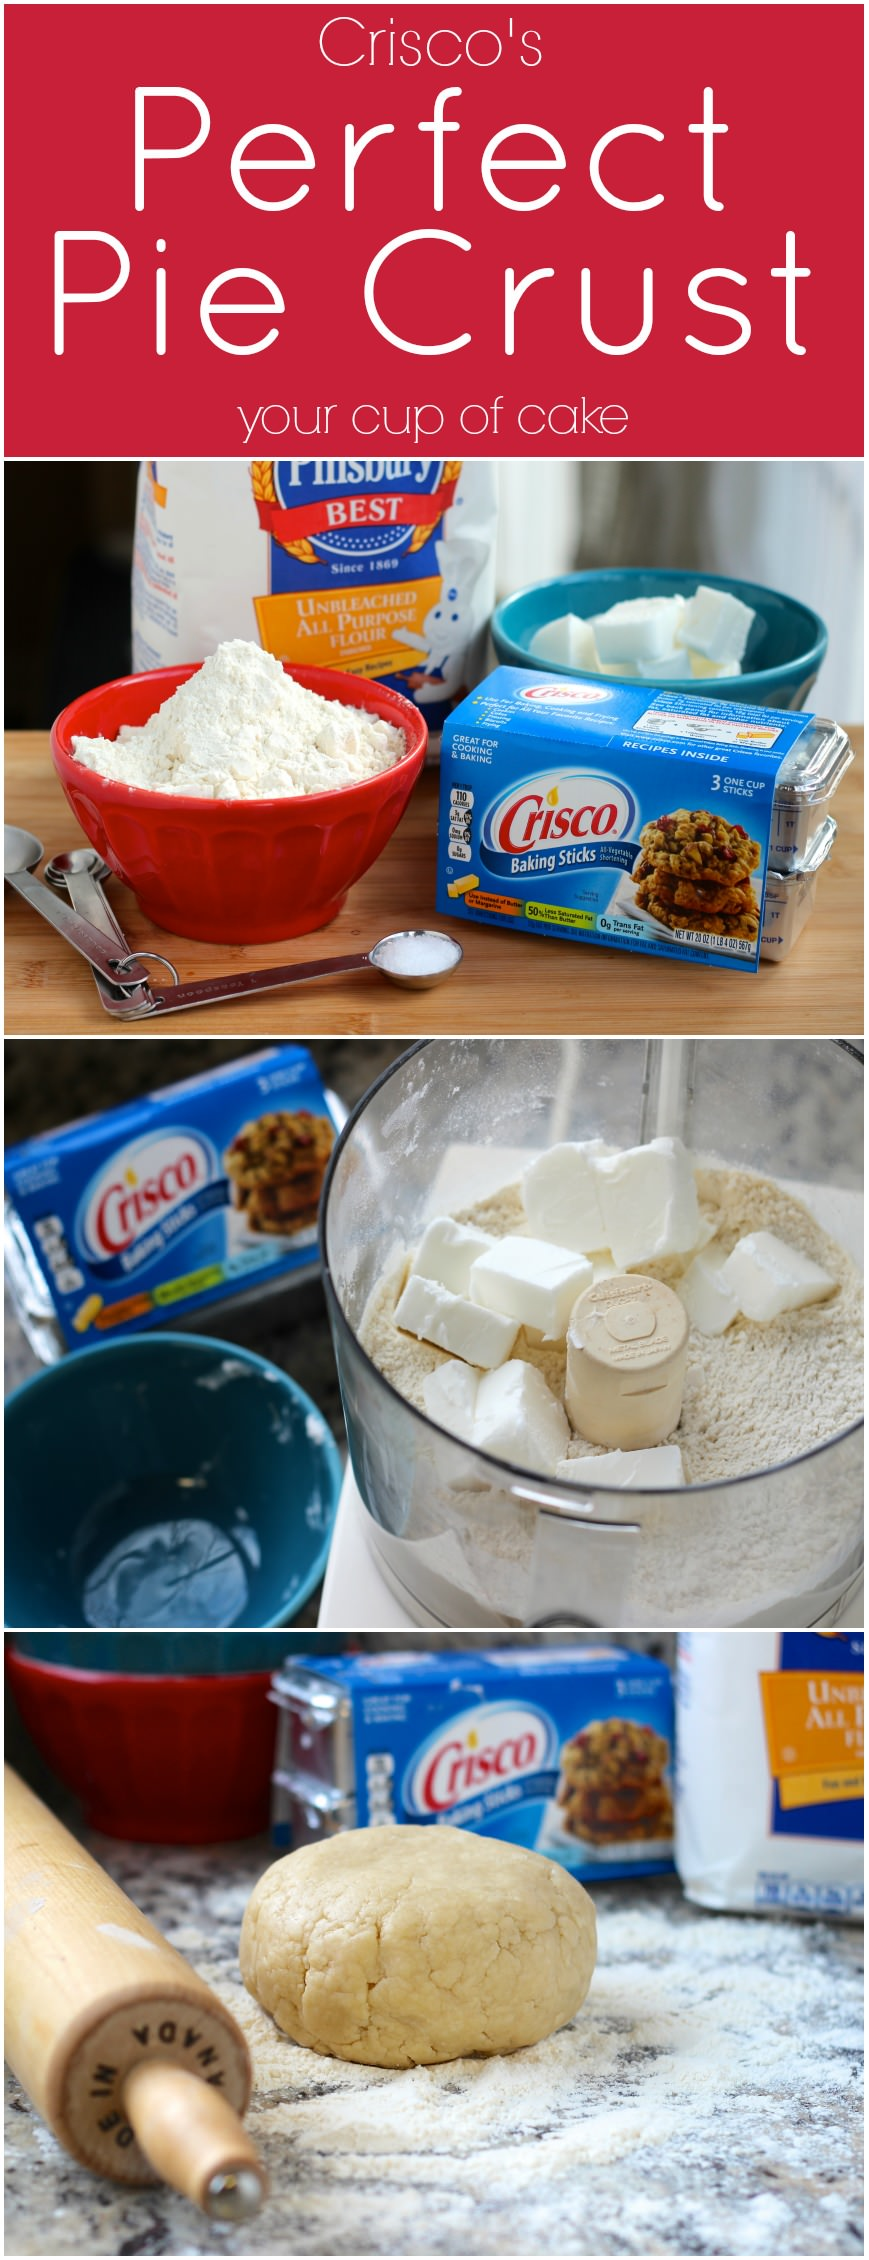 Perfect Pie Crust and Giveaway! - Your Cup of Cake